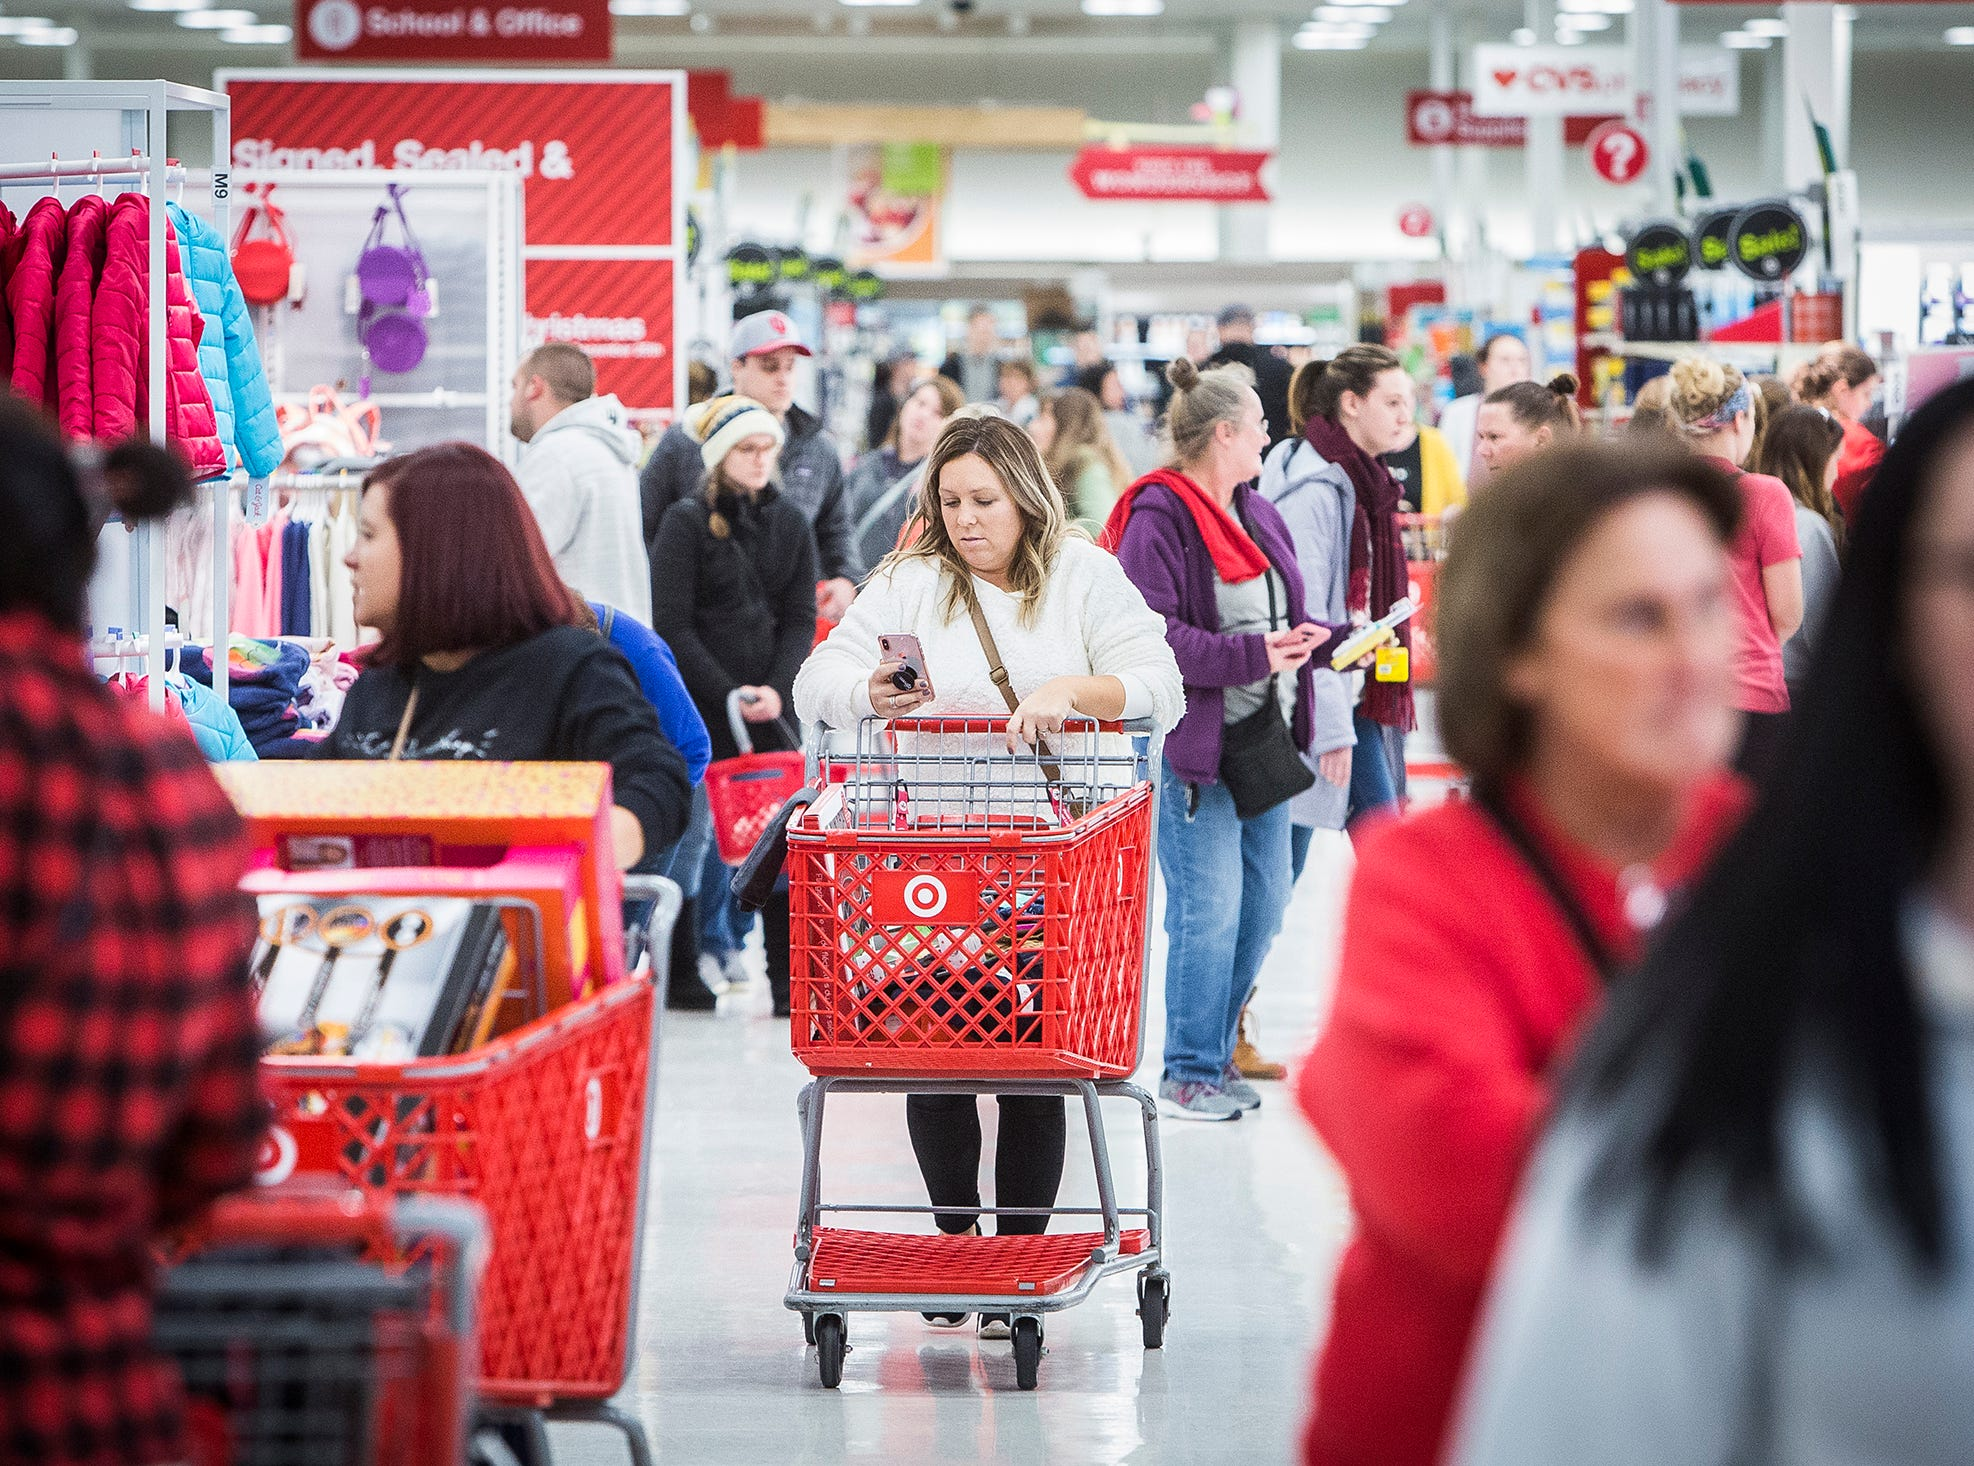 Shoppers crowd an aisle at Target on Black Friday.